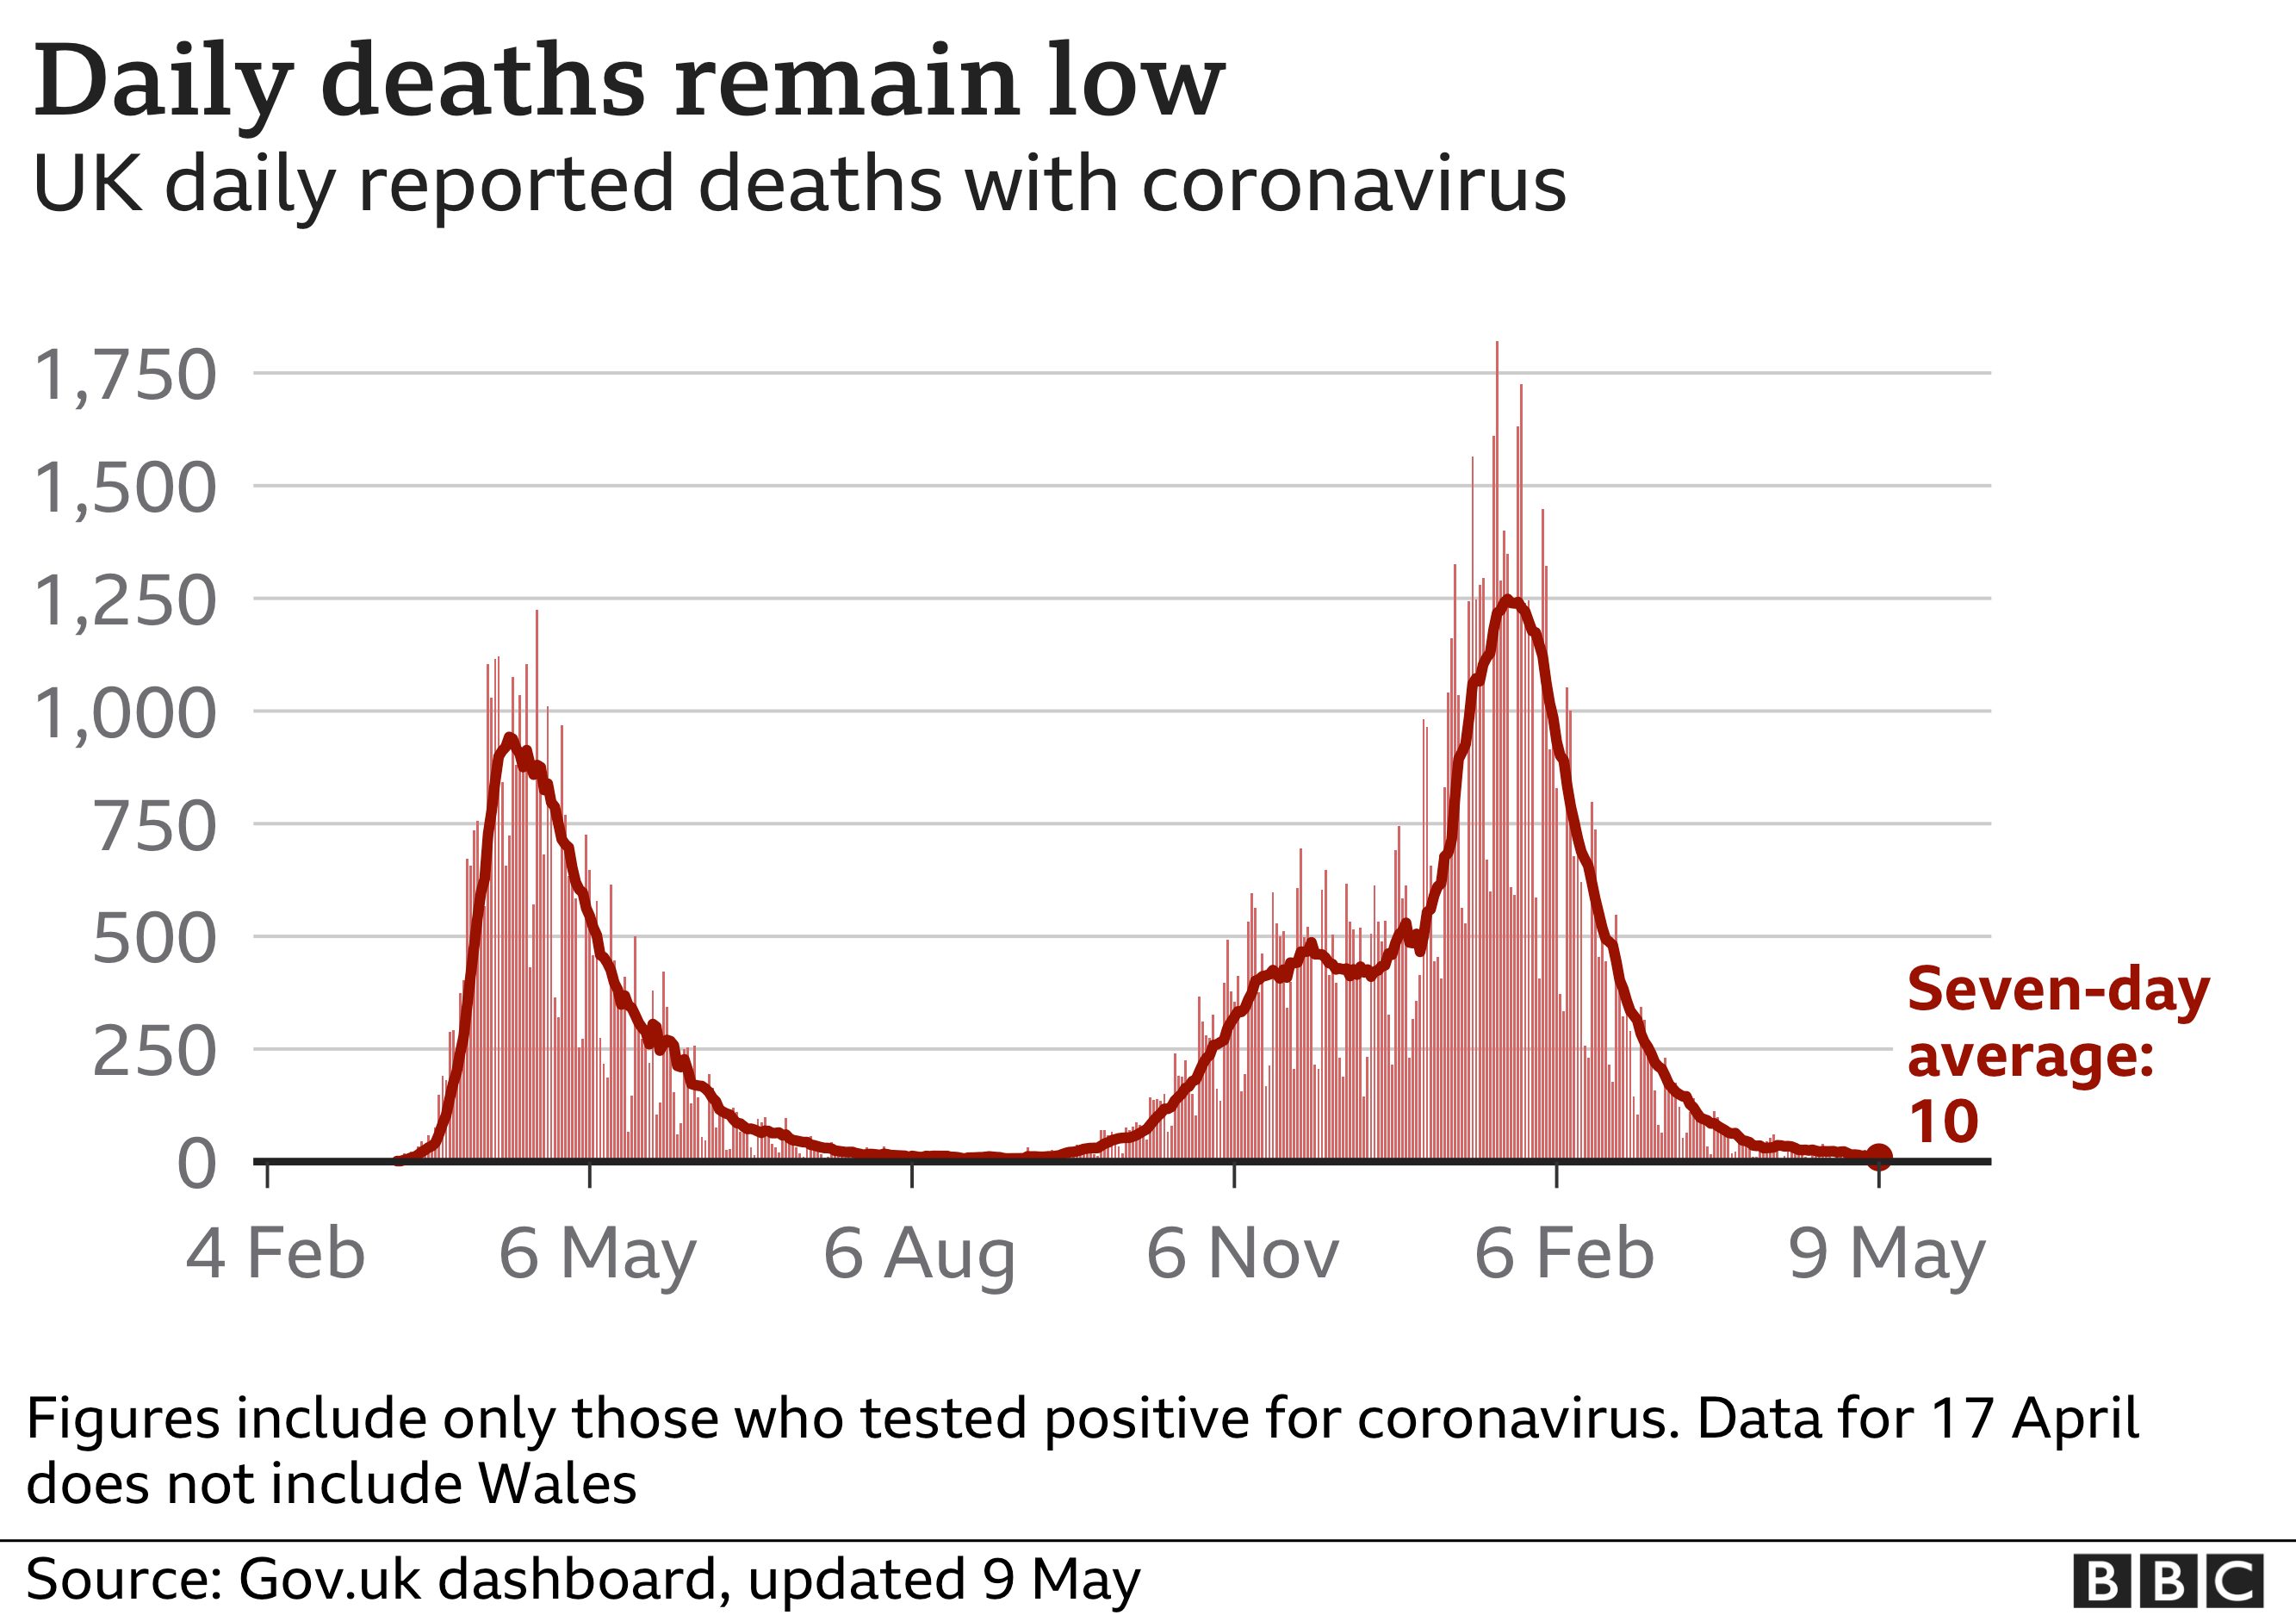 Chart showing the number of daily deaths remains low. Updated 9 May.